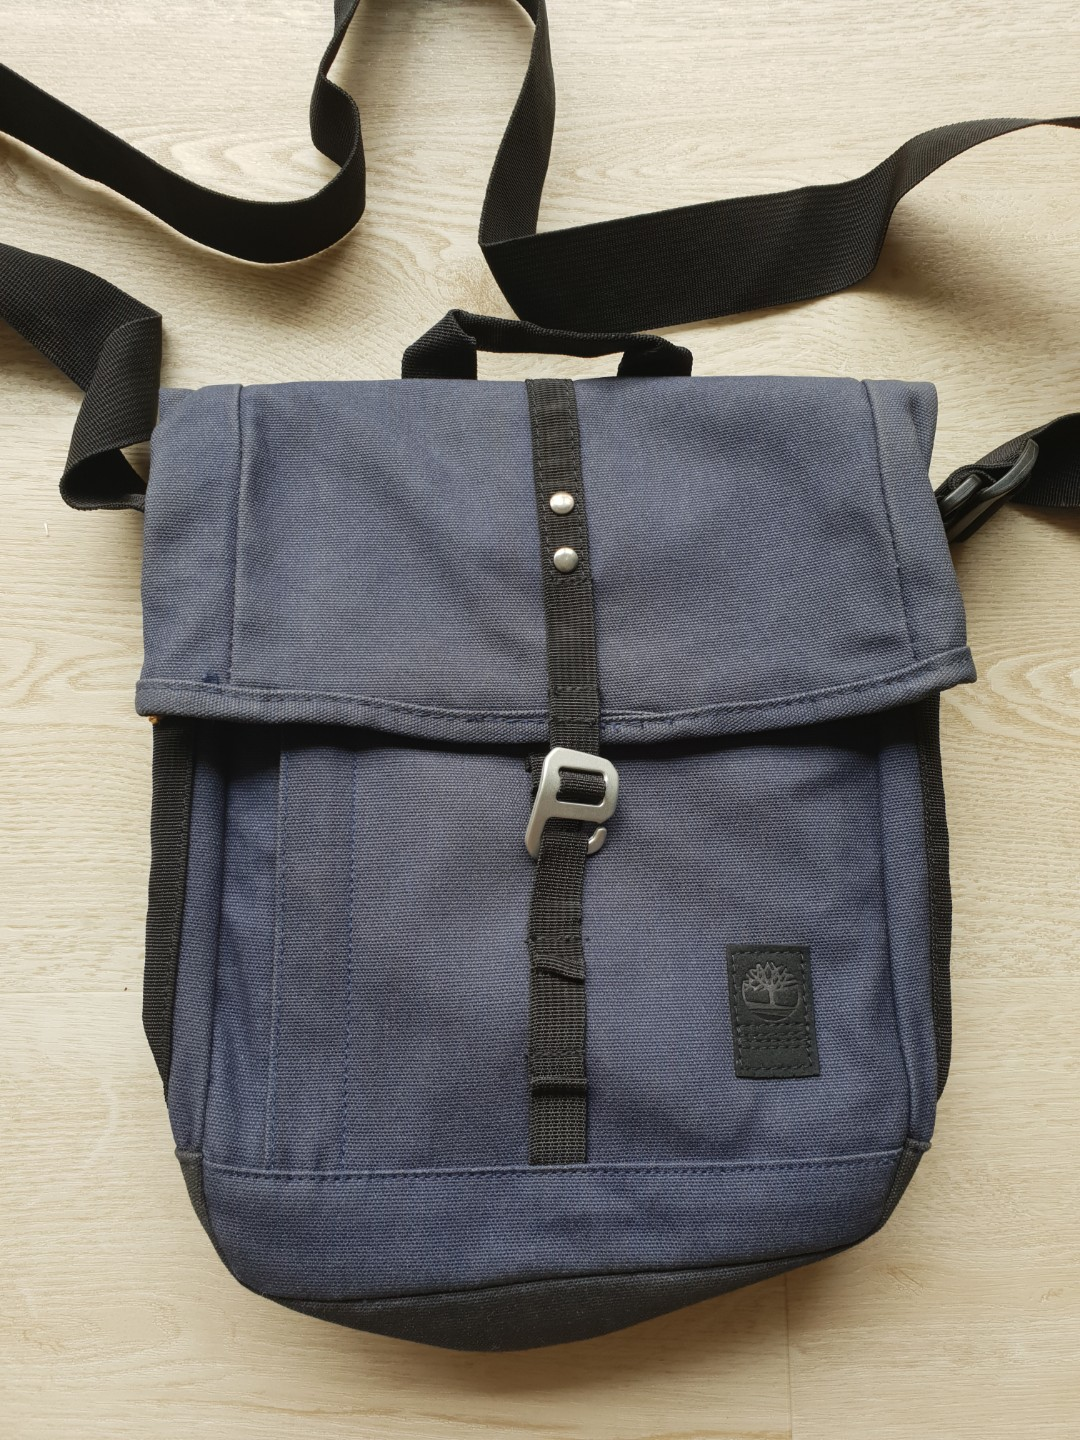 6ca9c1566f Timberland sling bag, Men's Fashion, Bags & Wallets, Sling Bags on Carousell